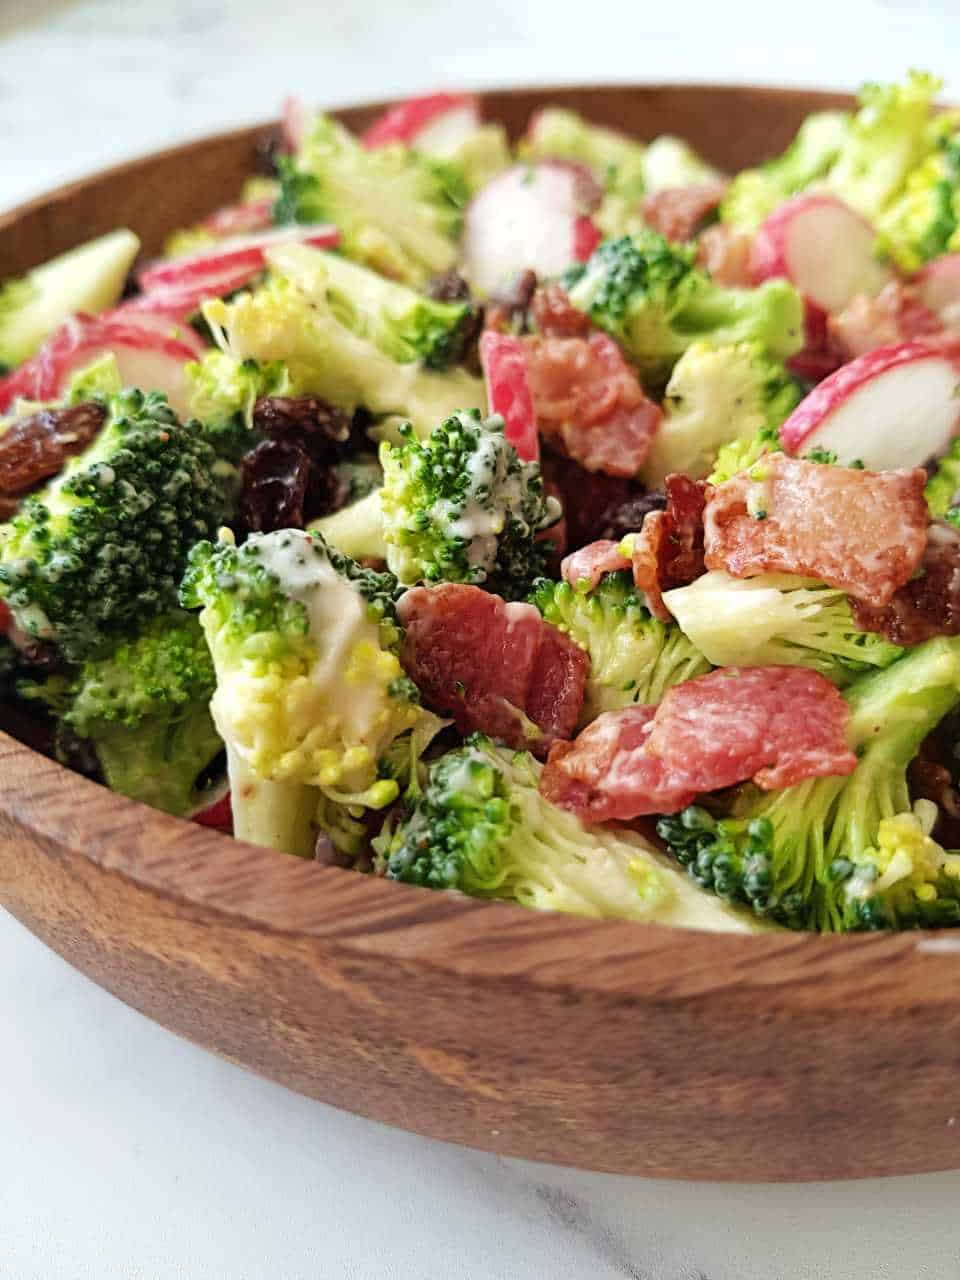 Broccoli salad in a wooden bowl.